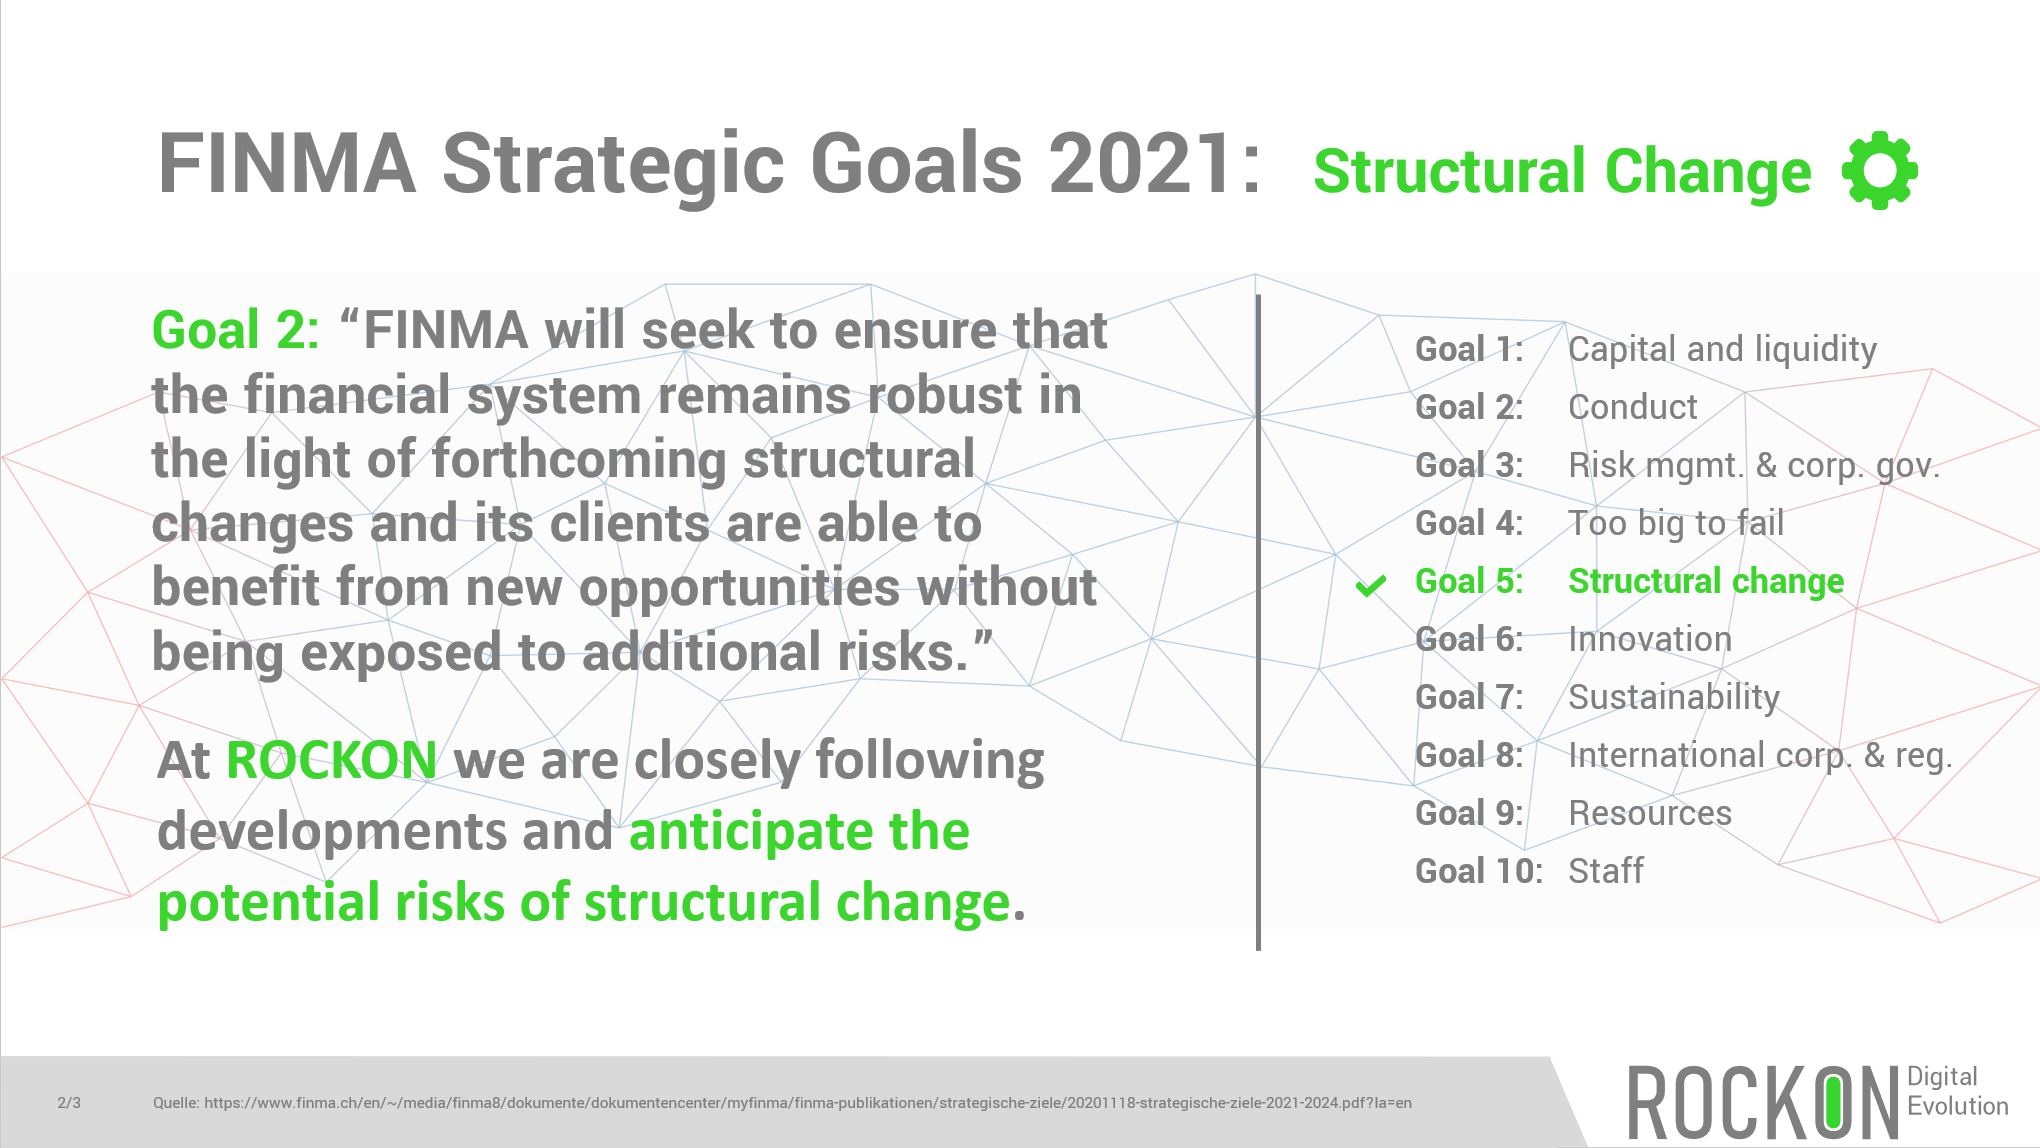 structual_changes_FINMA21